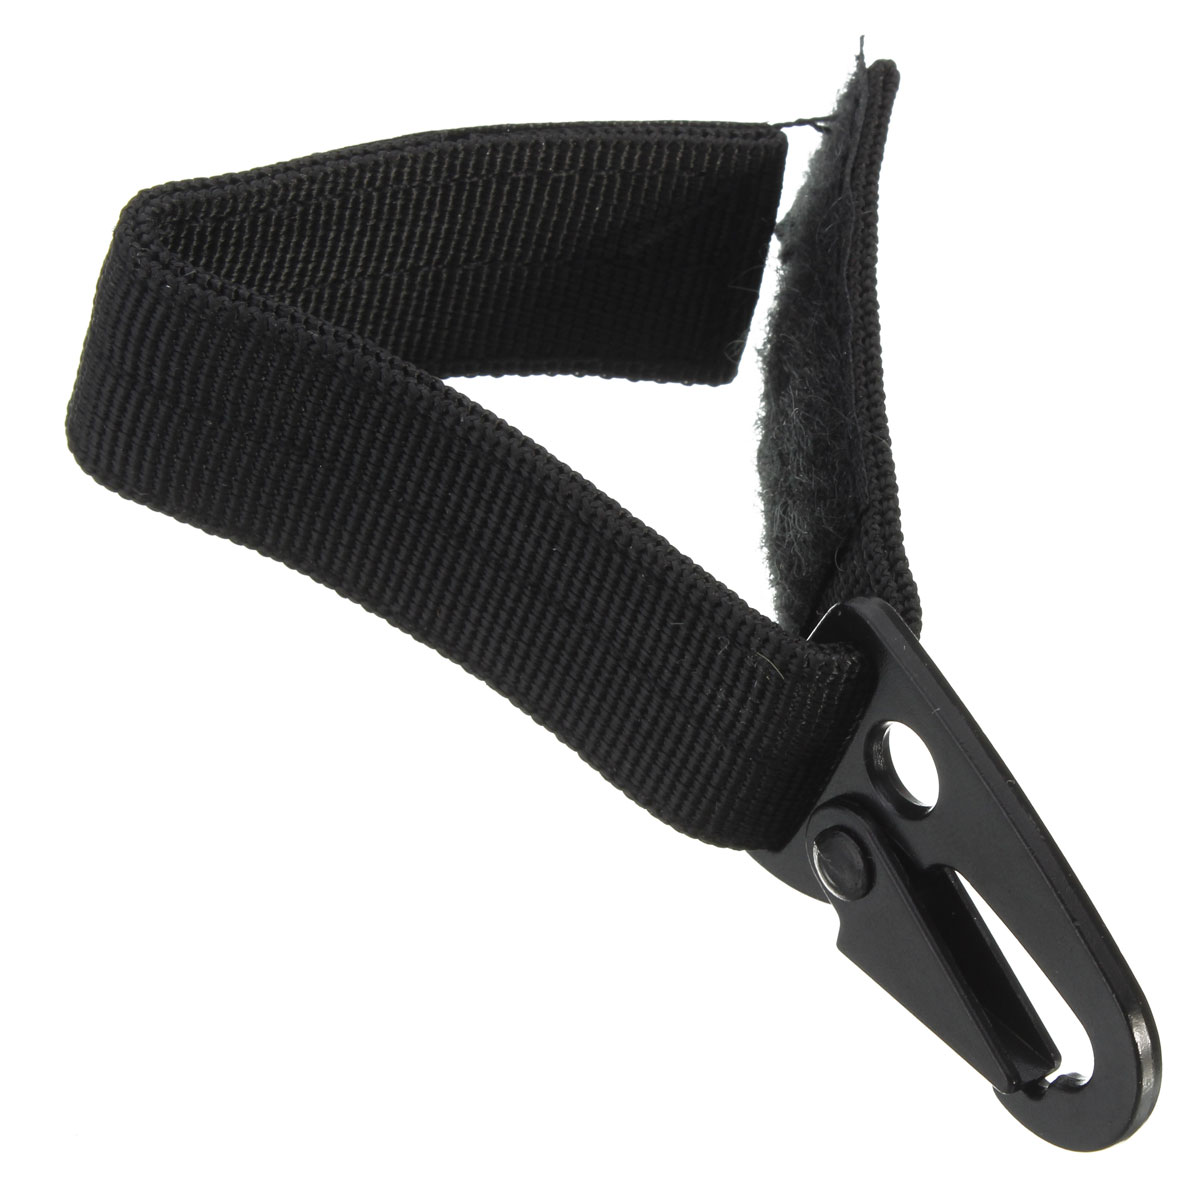 Tactical Military Belt Nylon Carabiner Key Holder Bag Hook Webbing Pressable Buckle Strap Clip US Stock - Walmart.com